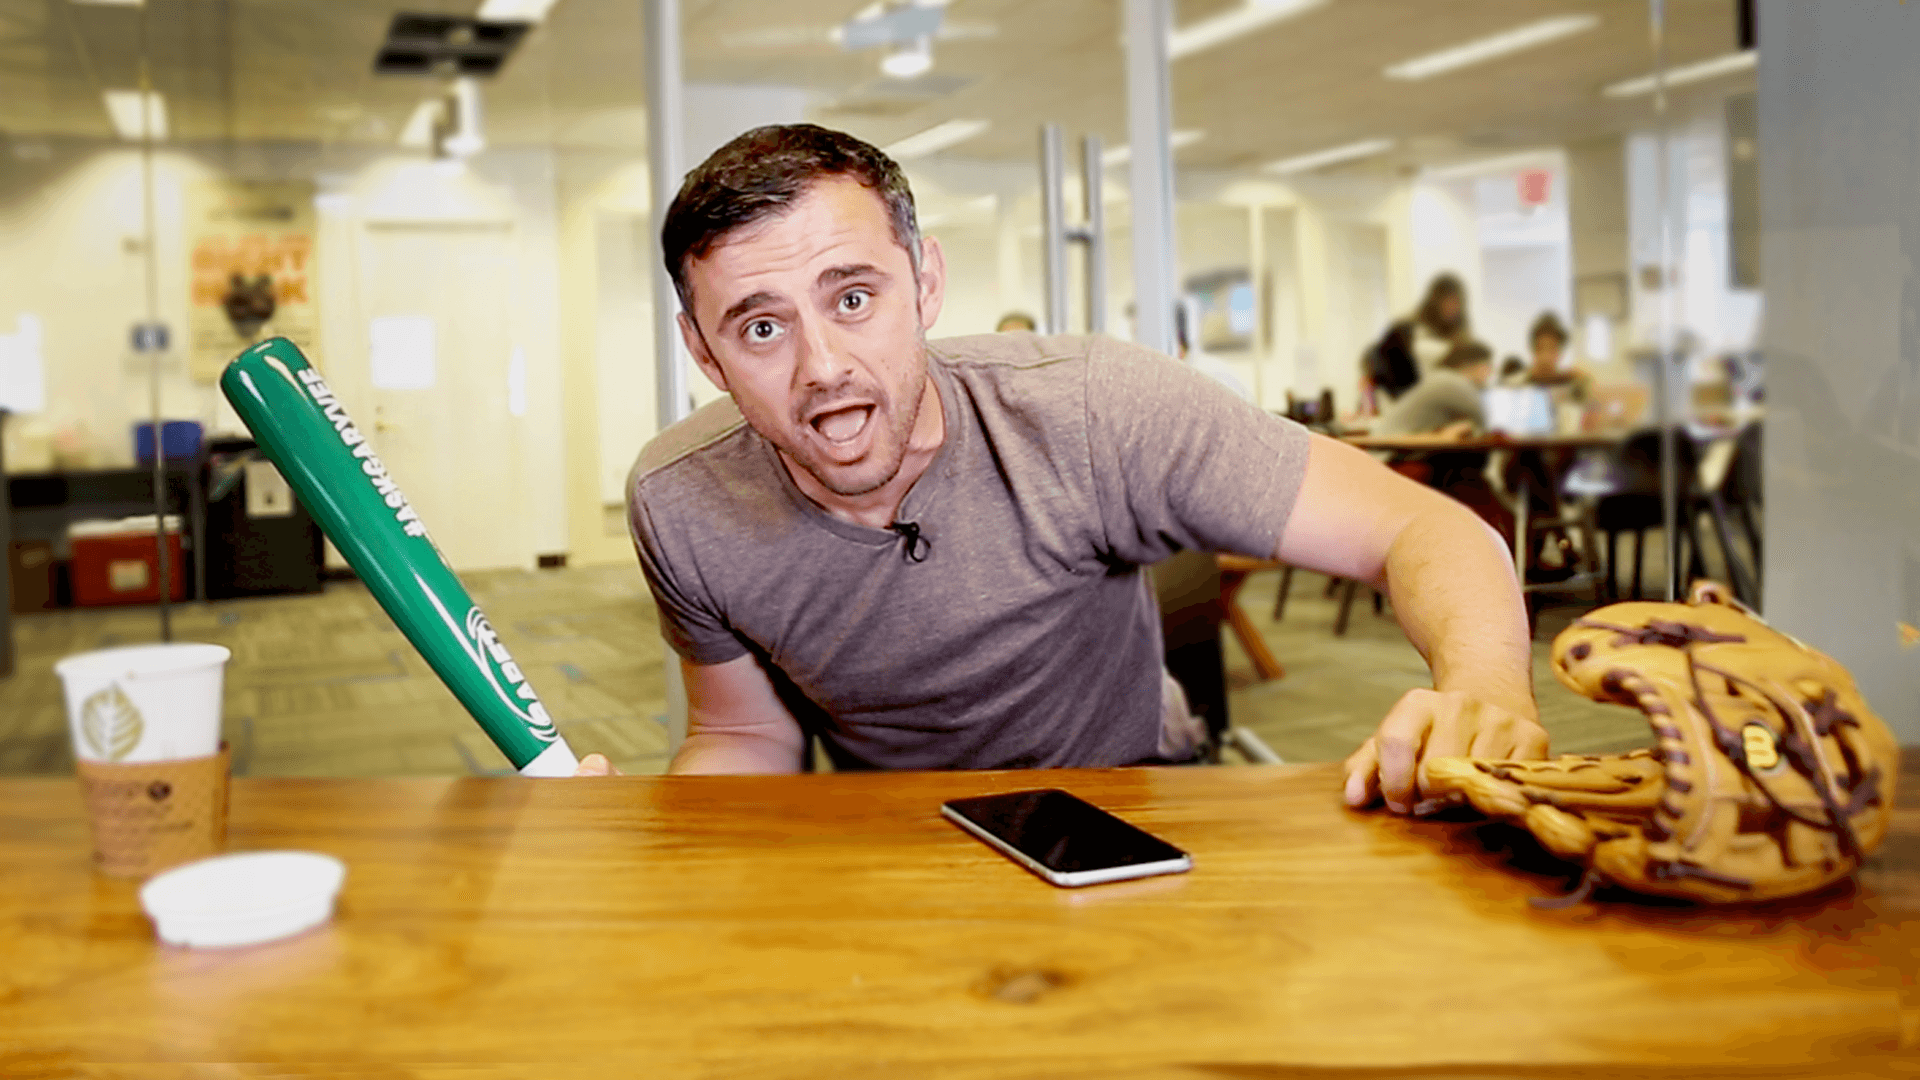 #AskGaryVee Episode 120